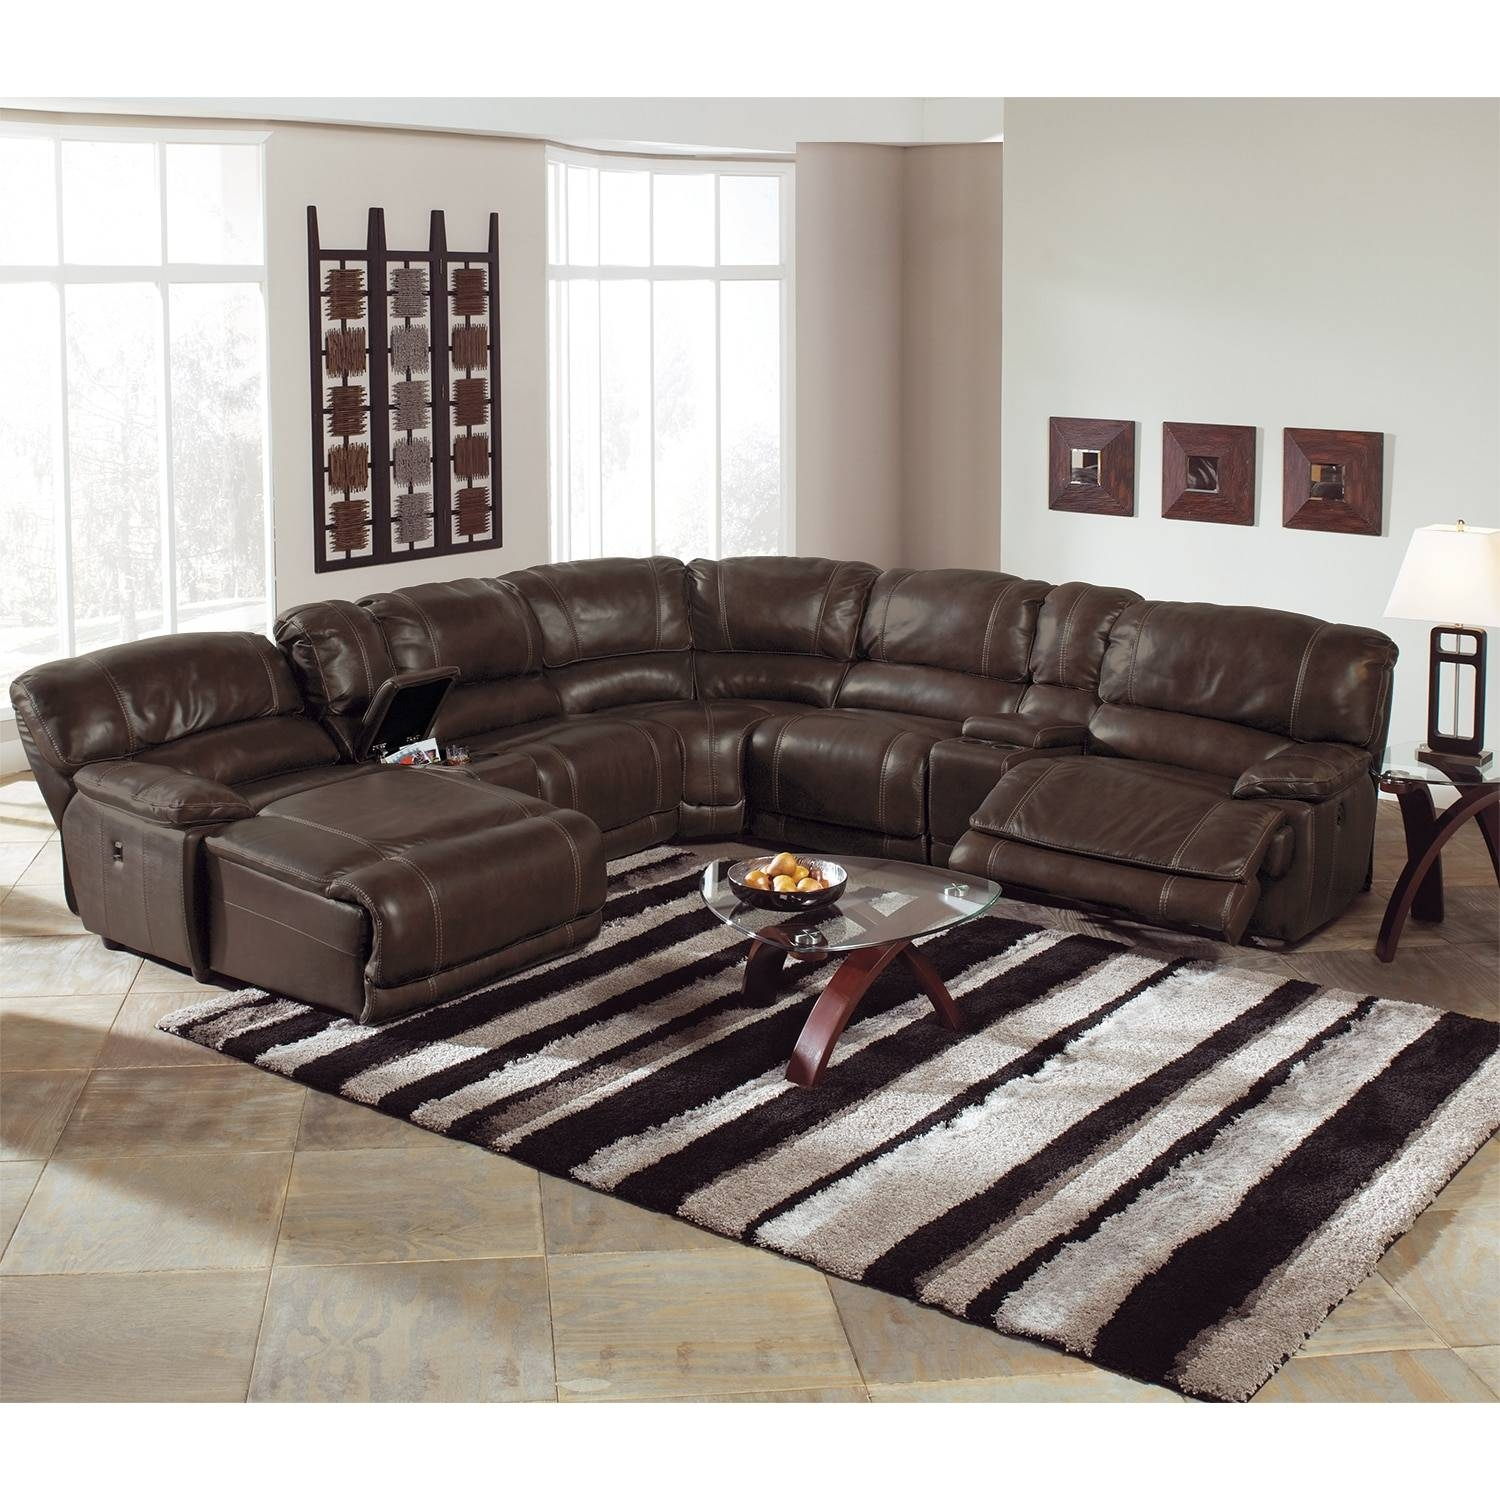 Berkline Leather Sectional Sofas | Centerfieldbar with regard to Berkline Sectional Sofas (Image 12 of 15)